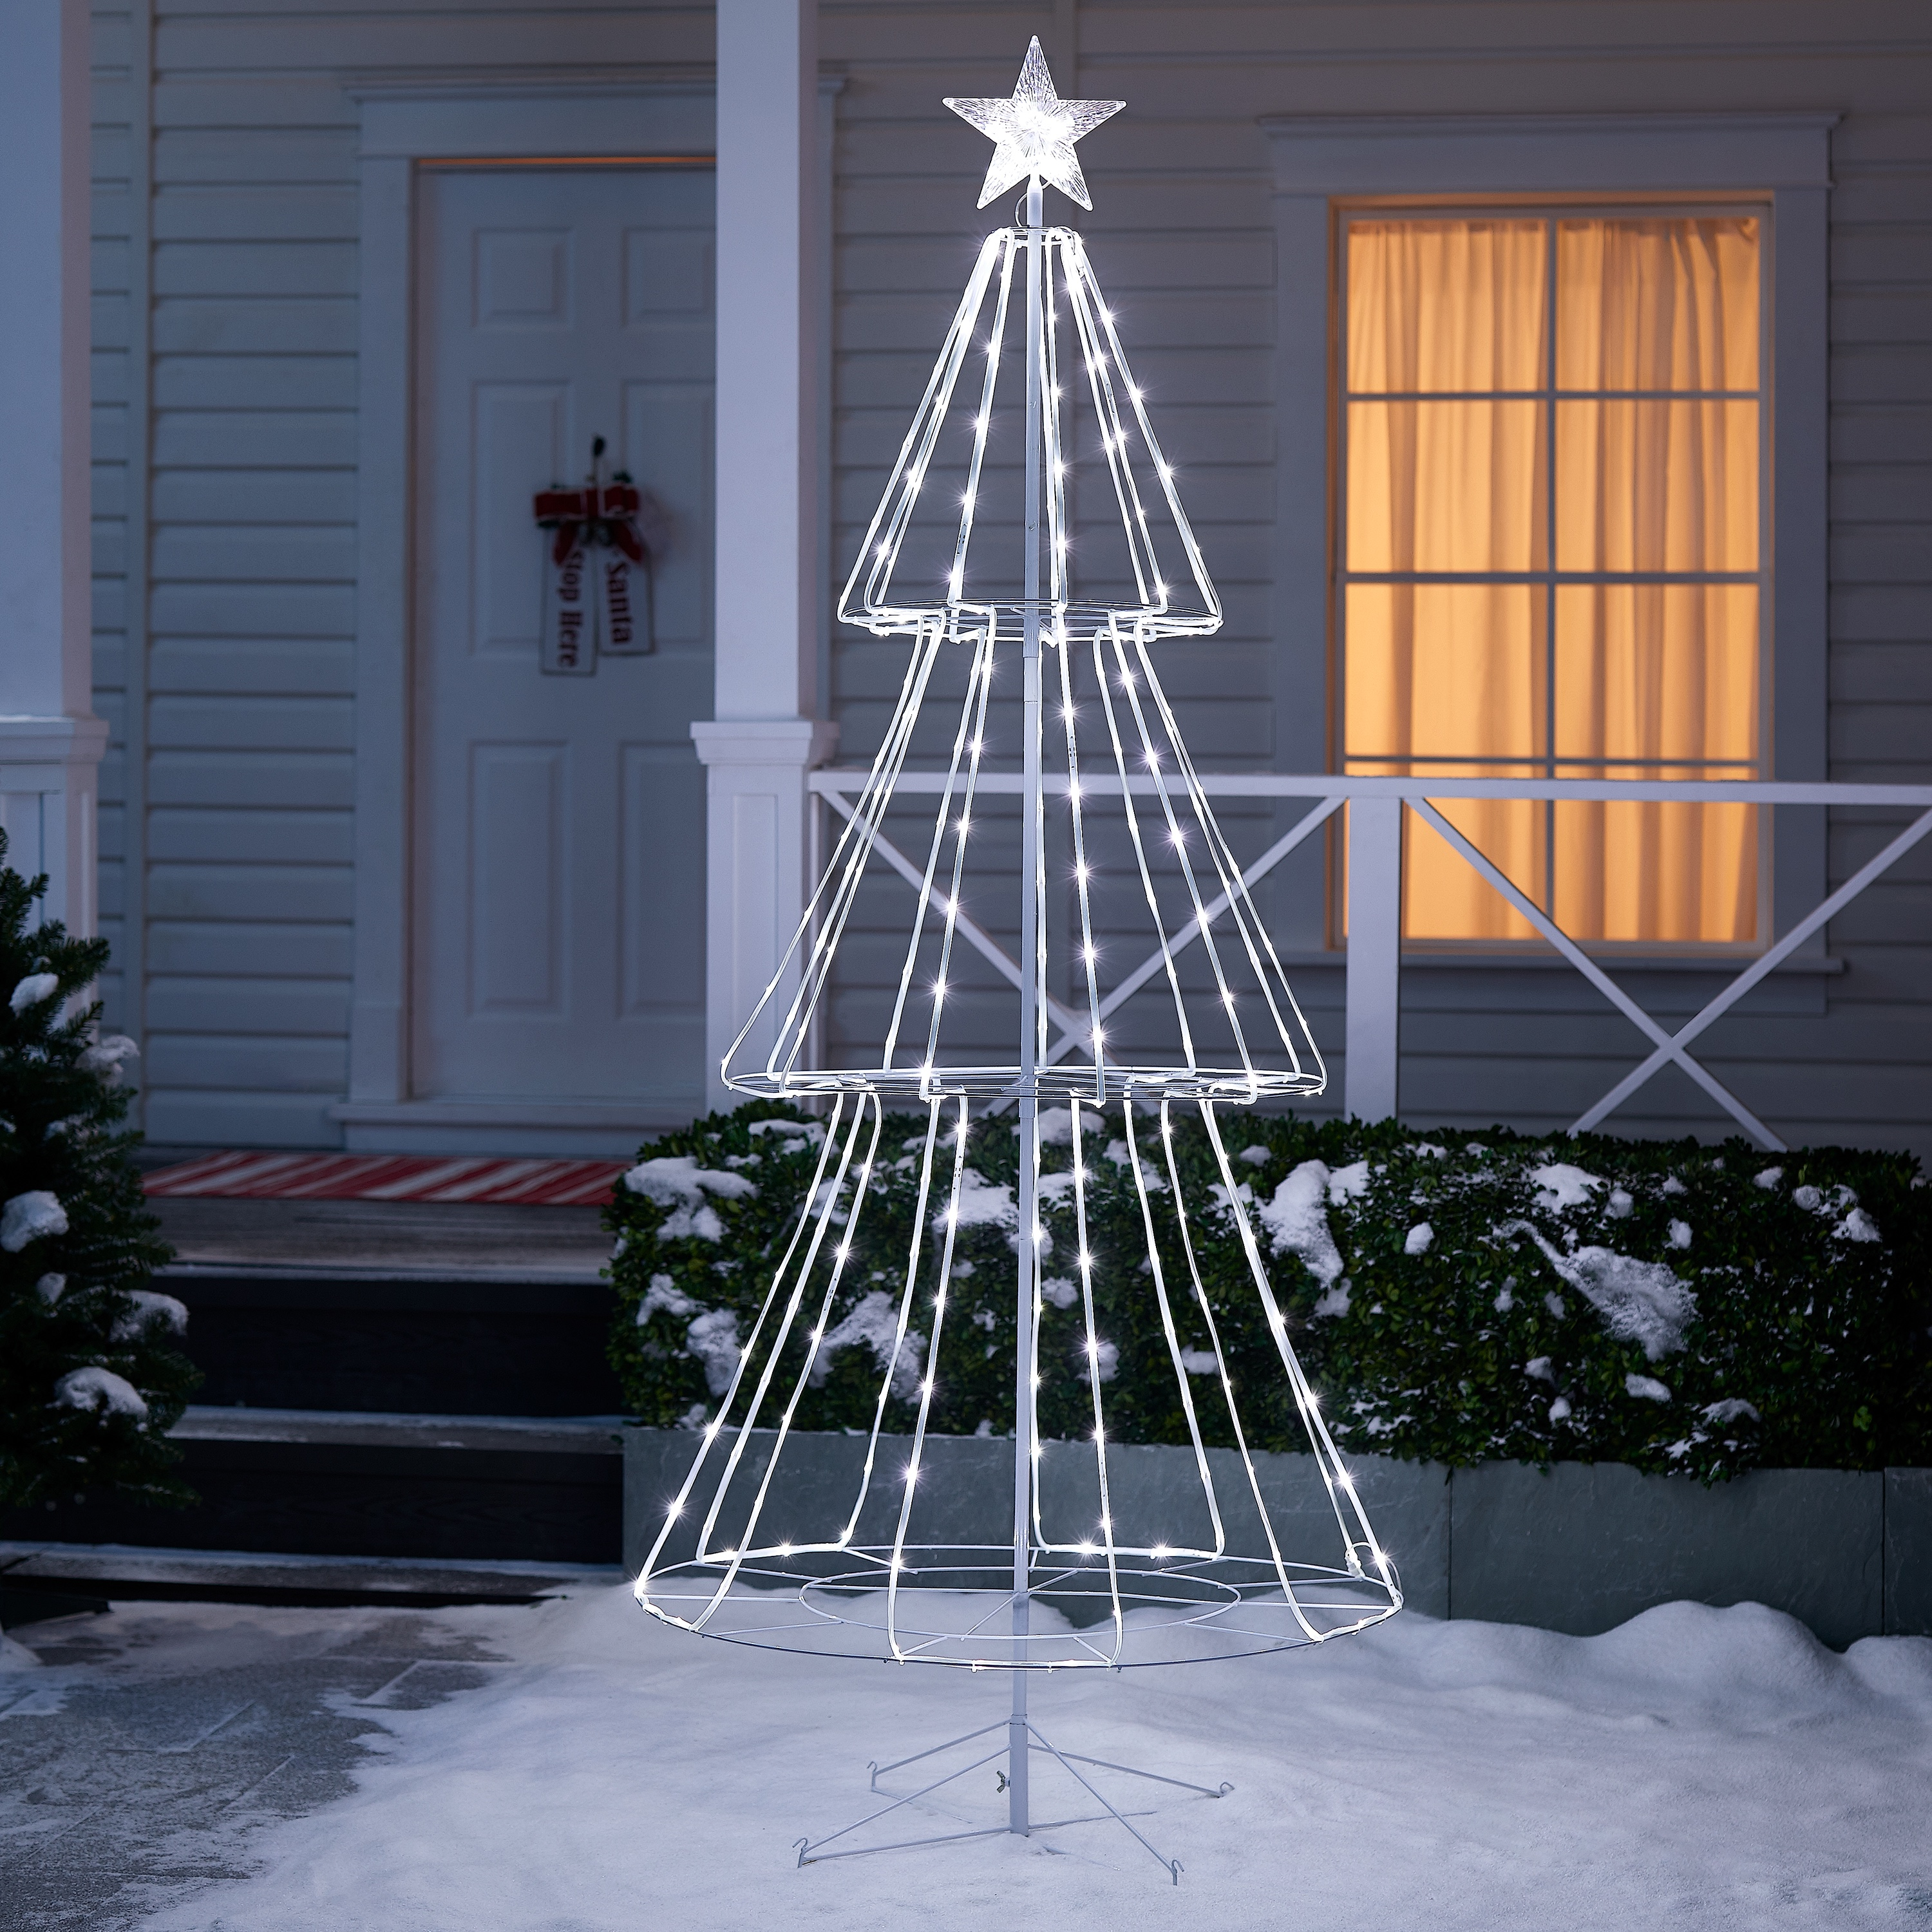 Holiday Time 8 Function LED Pre-Lit Christmas Tree, 7', Cool White